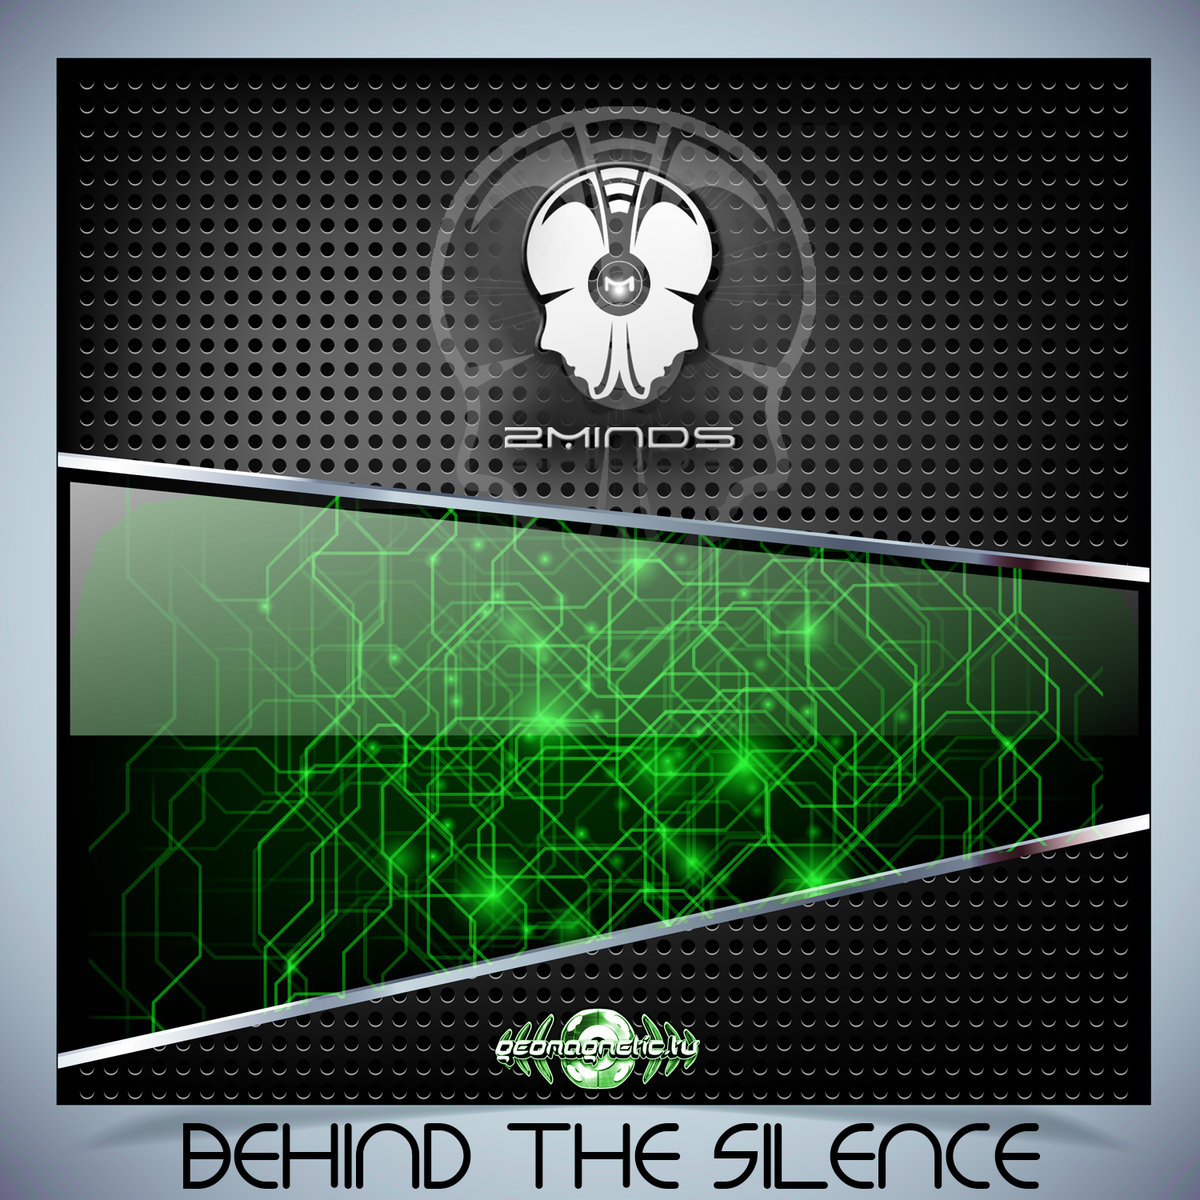 2Minds - Behind the Silence @ 'Behind the Silence' album (electronic, progressive trance)